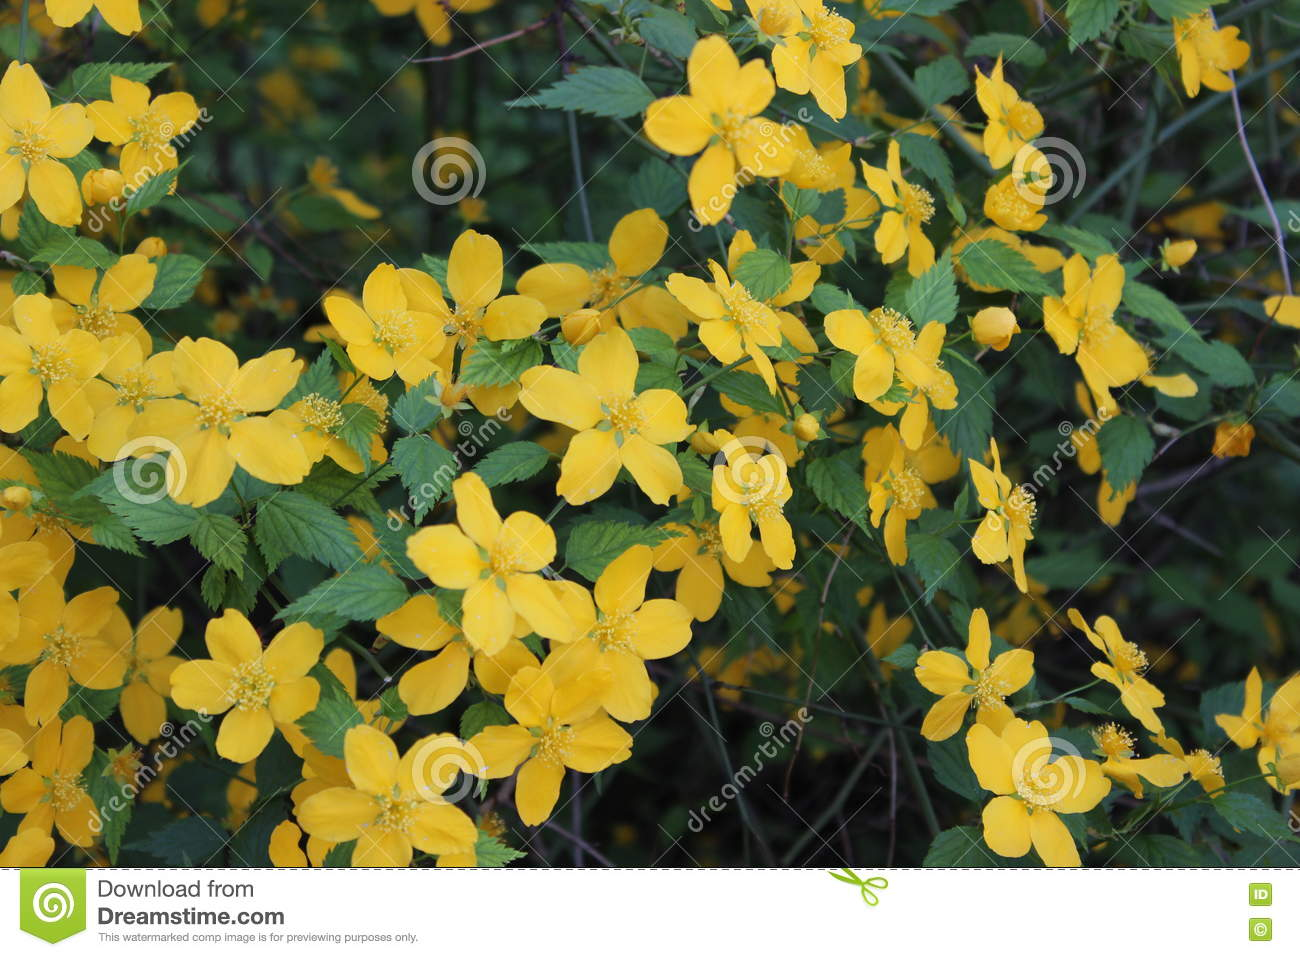 Flowering Shrub With Yellow Flowers Stock Image Image Of Petal